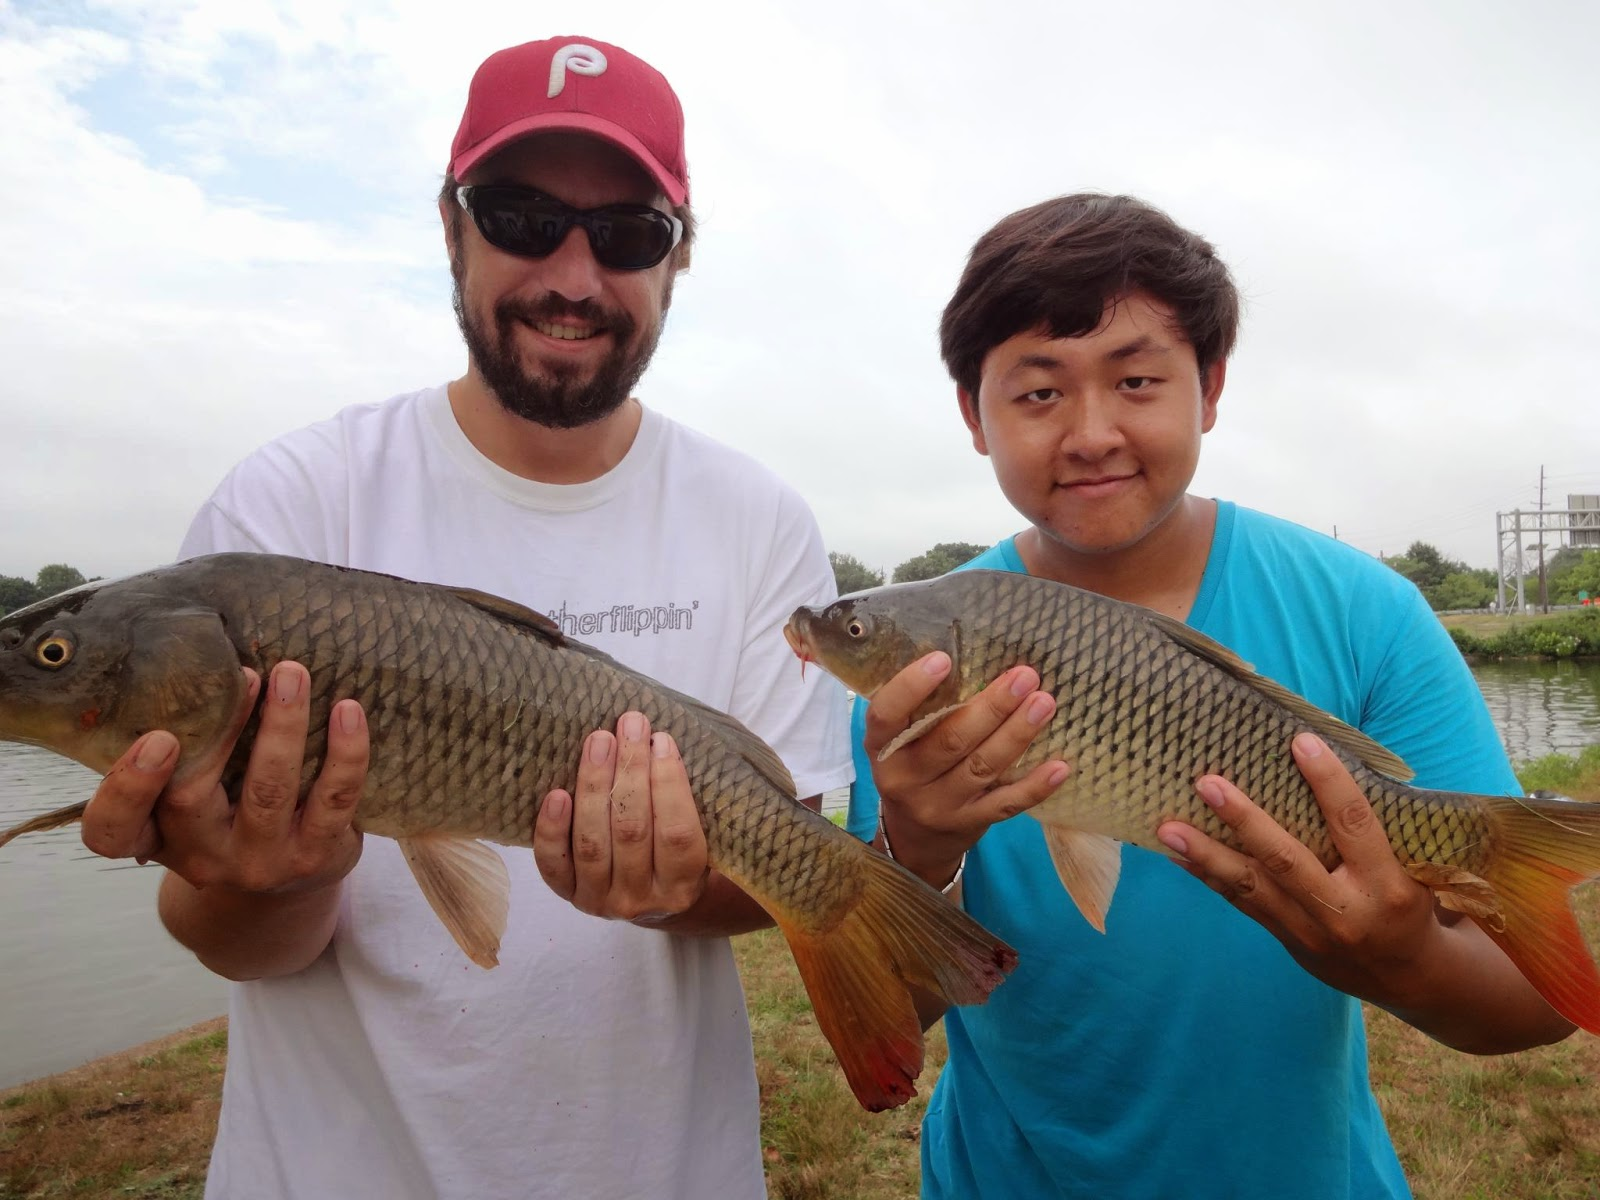 extreme philly fishing introducing the cooper river lake and the 15th 2012 my friend jay d and i holding our respective common carp at the cooper river lake during the warmer months it s not that uncommon to